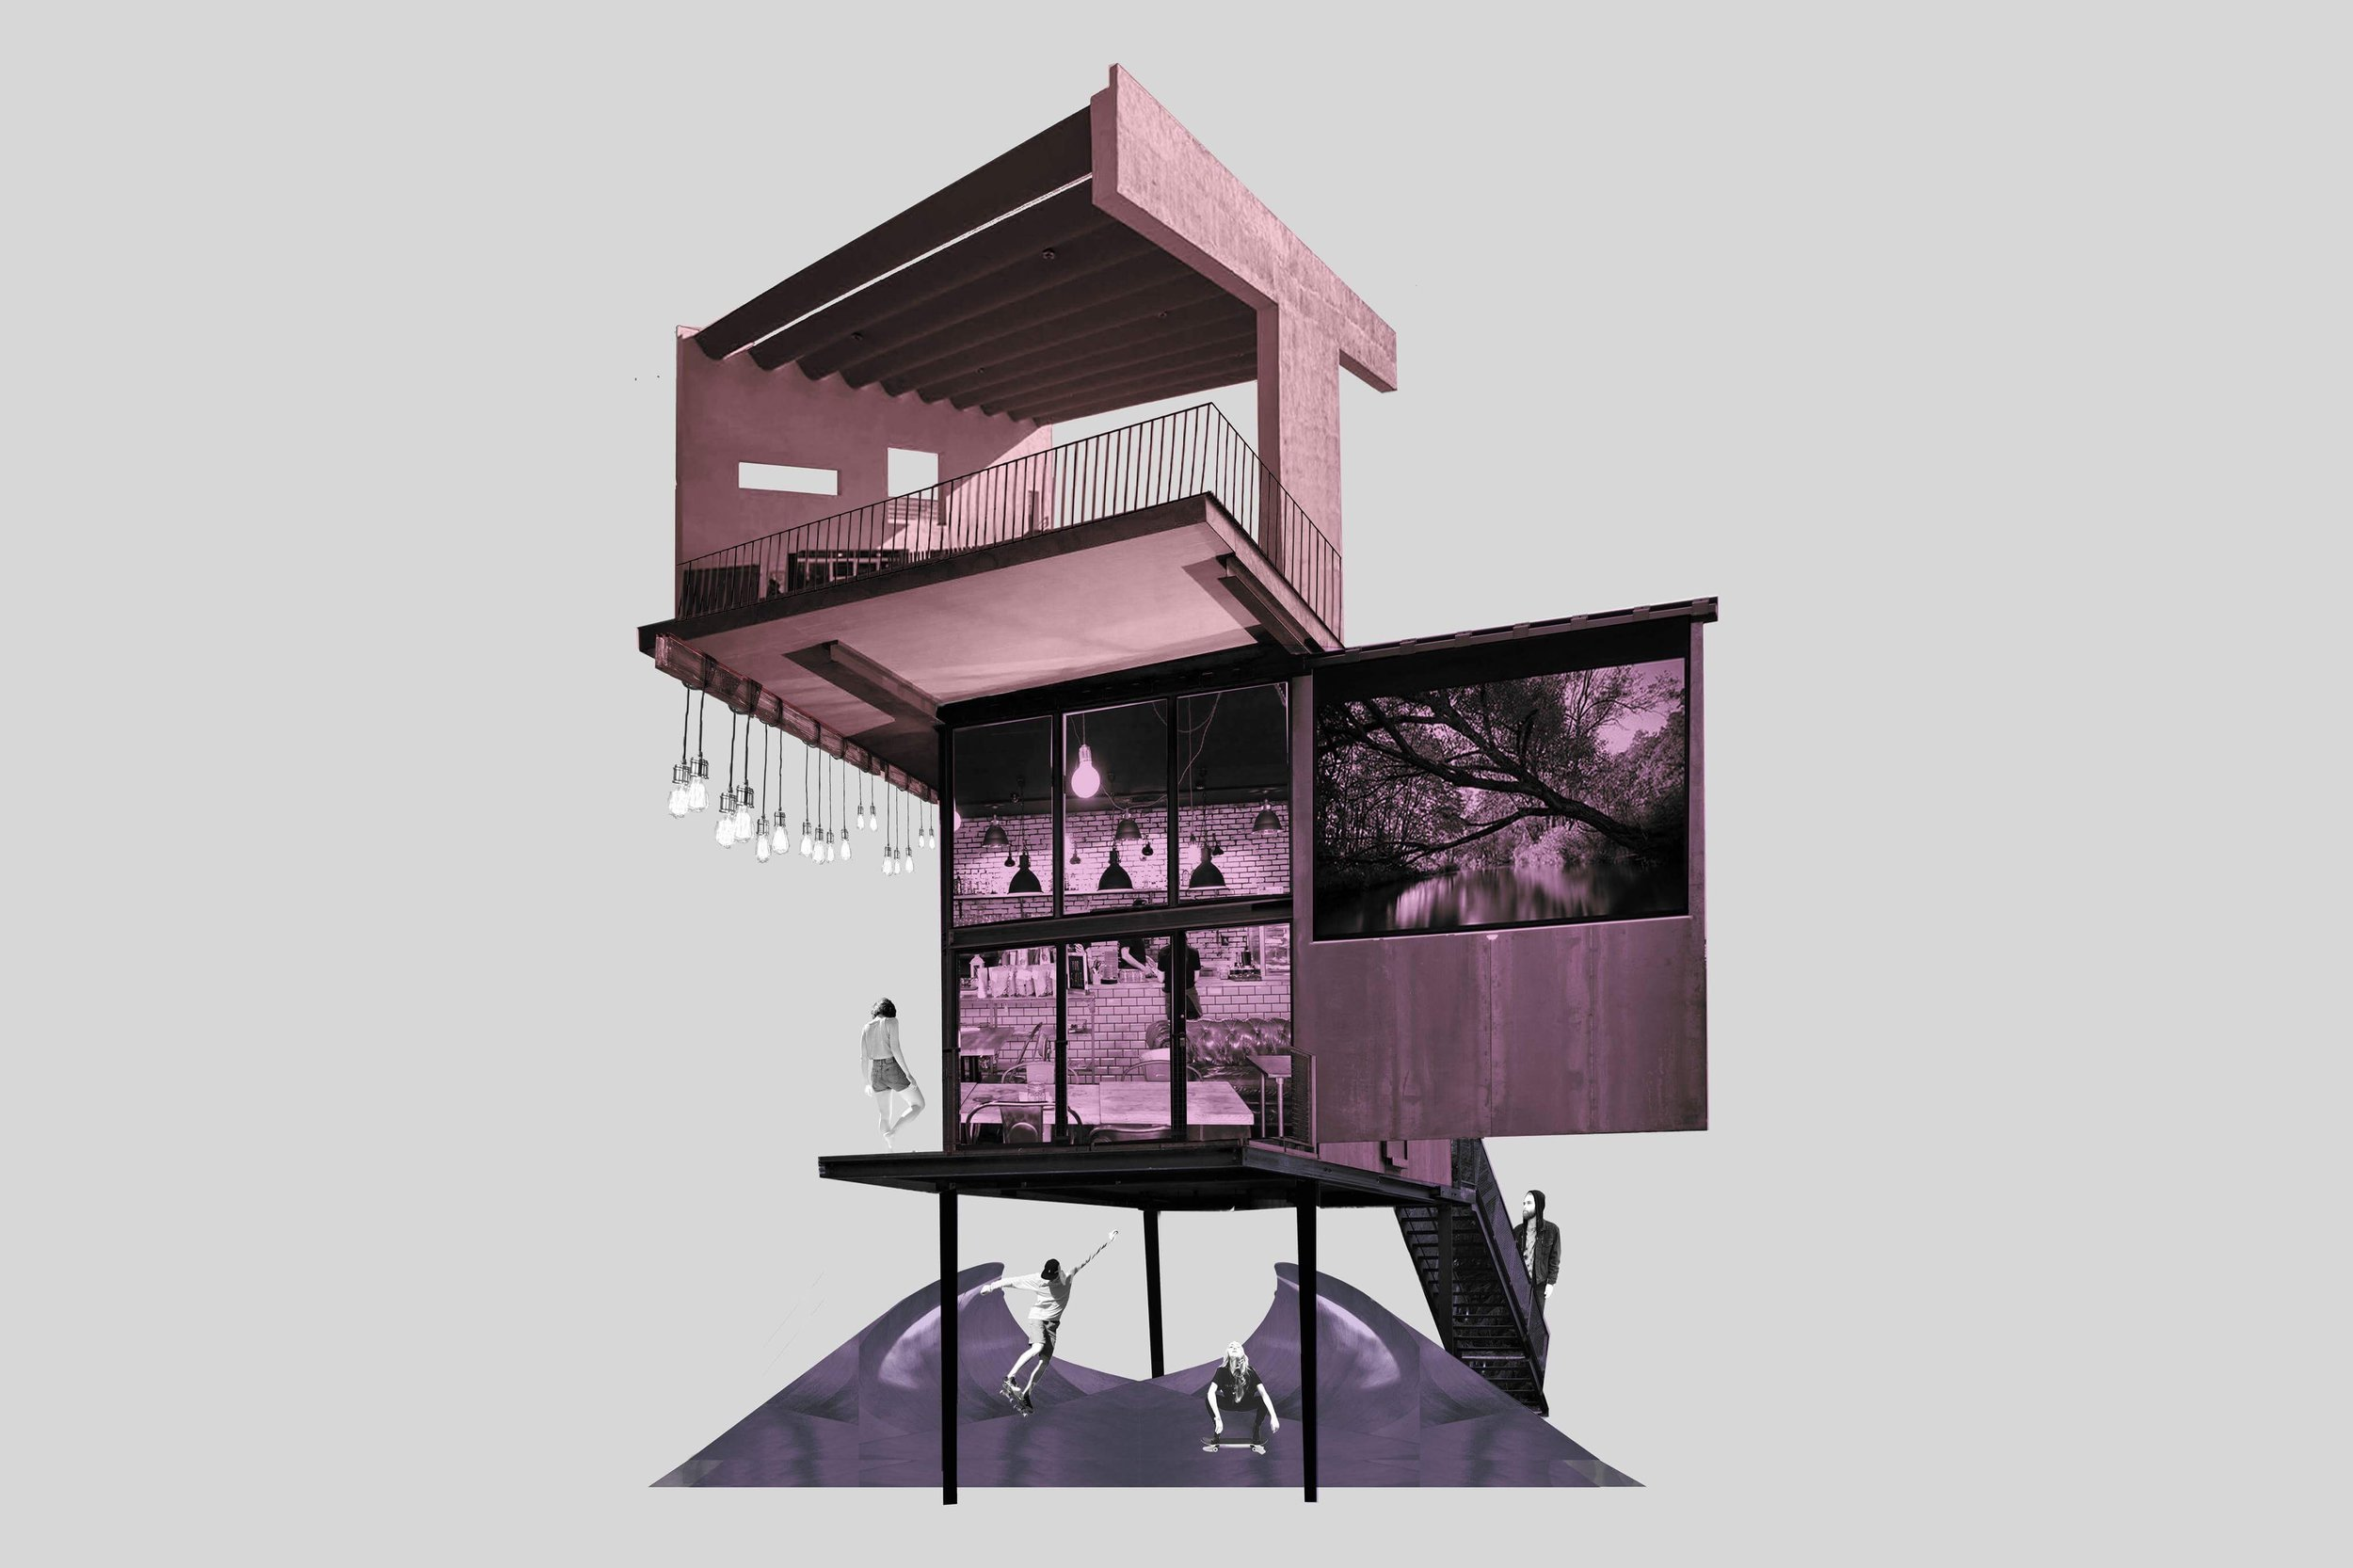 Jayme Contant - Architecture